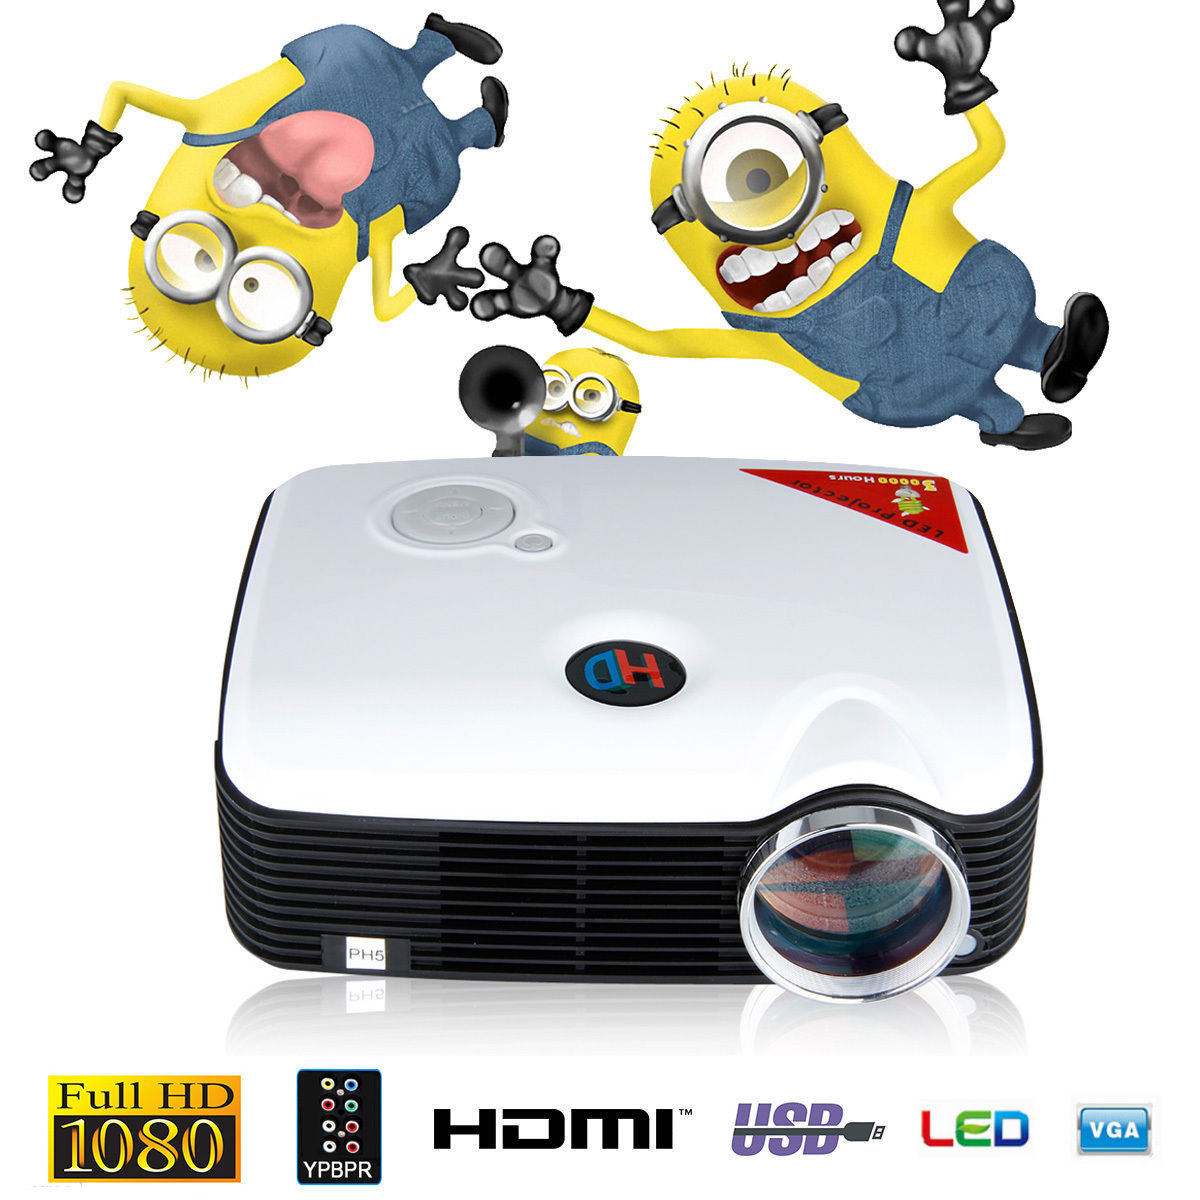 1080P SVGA 5000 Lumens LED LCD Home Business Projector HDMI Input.